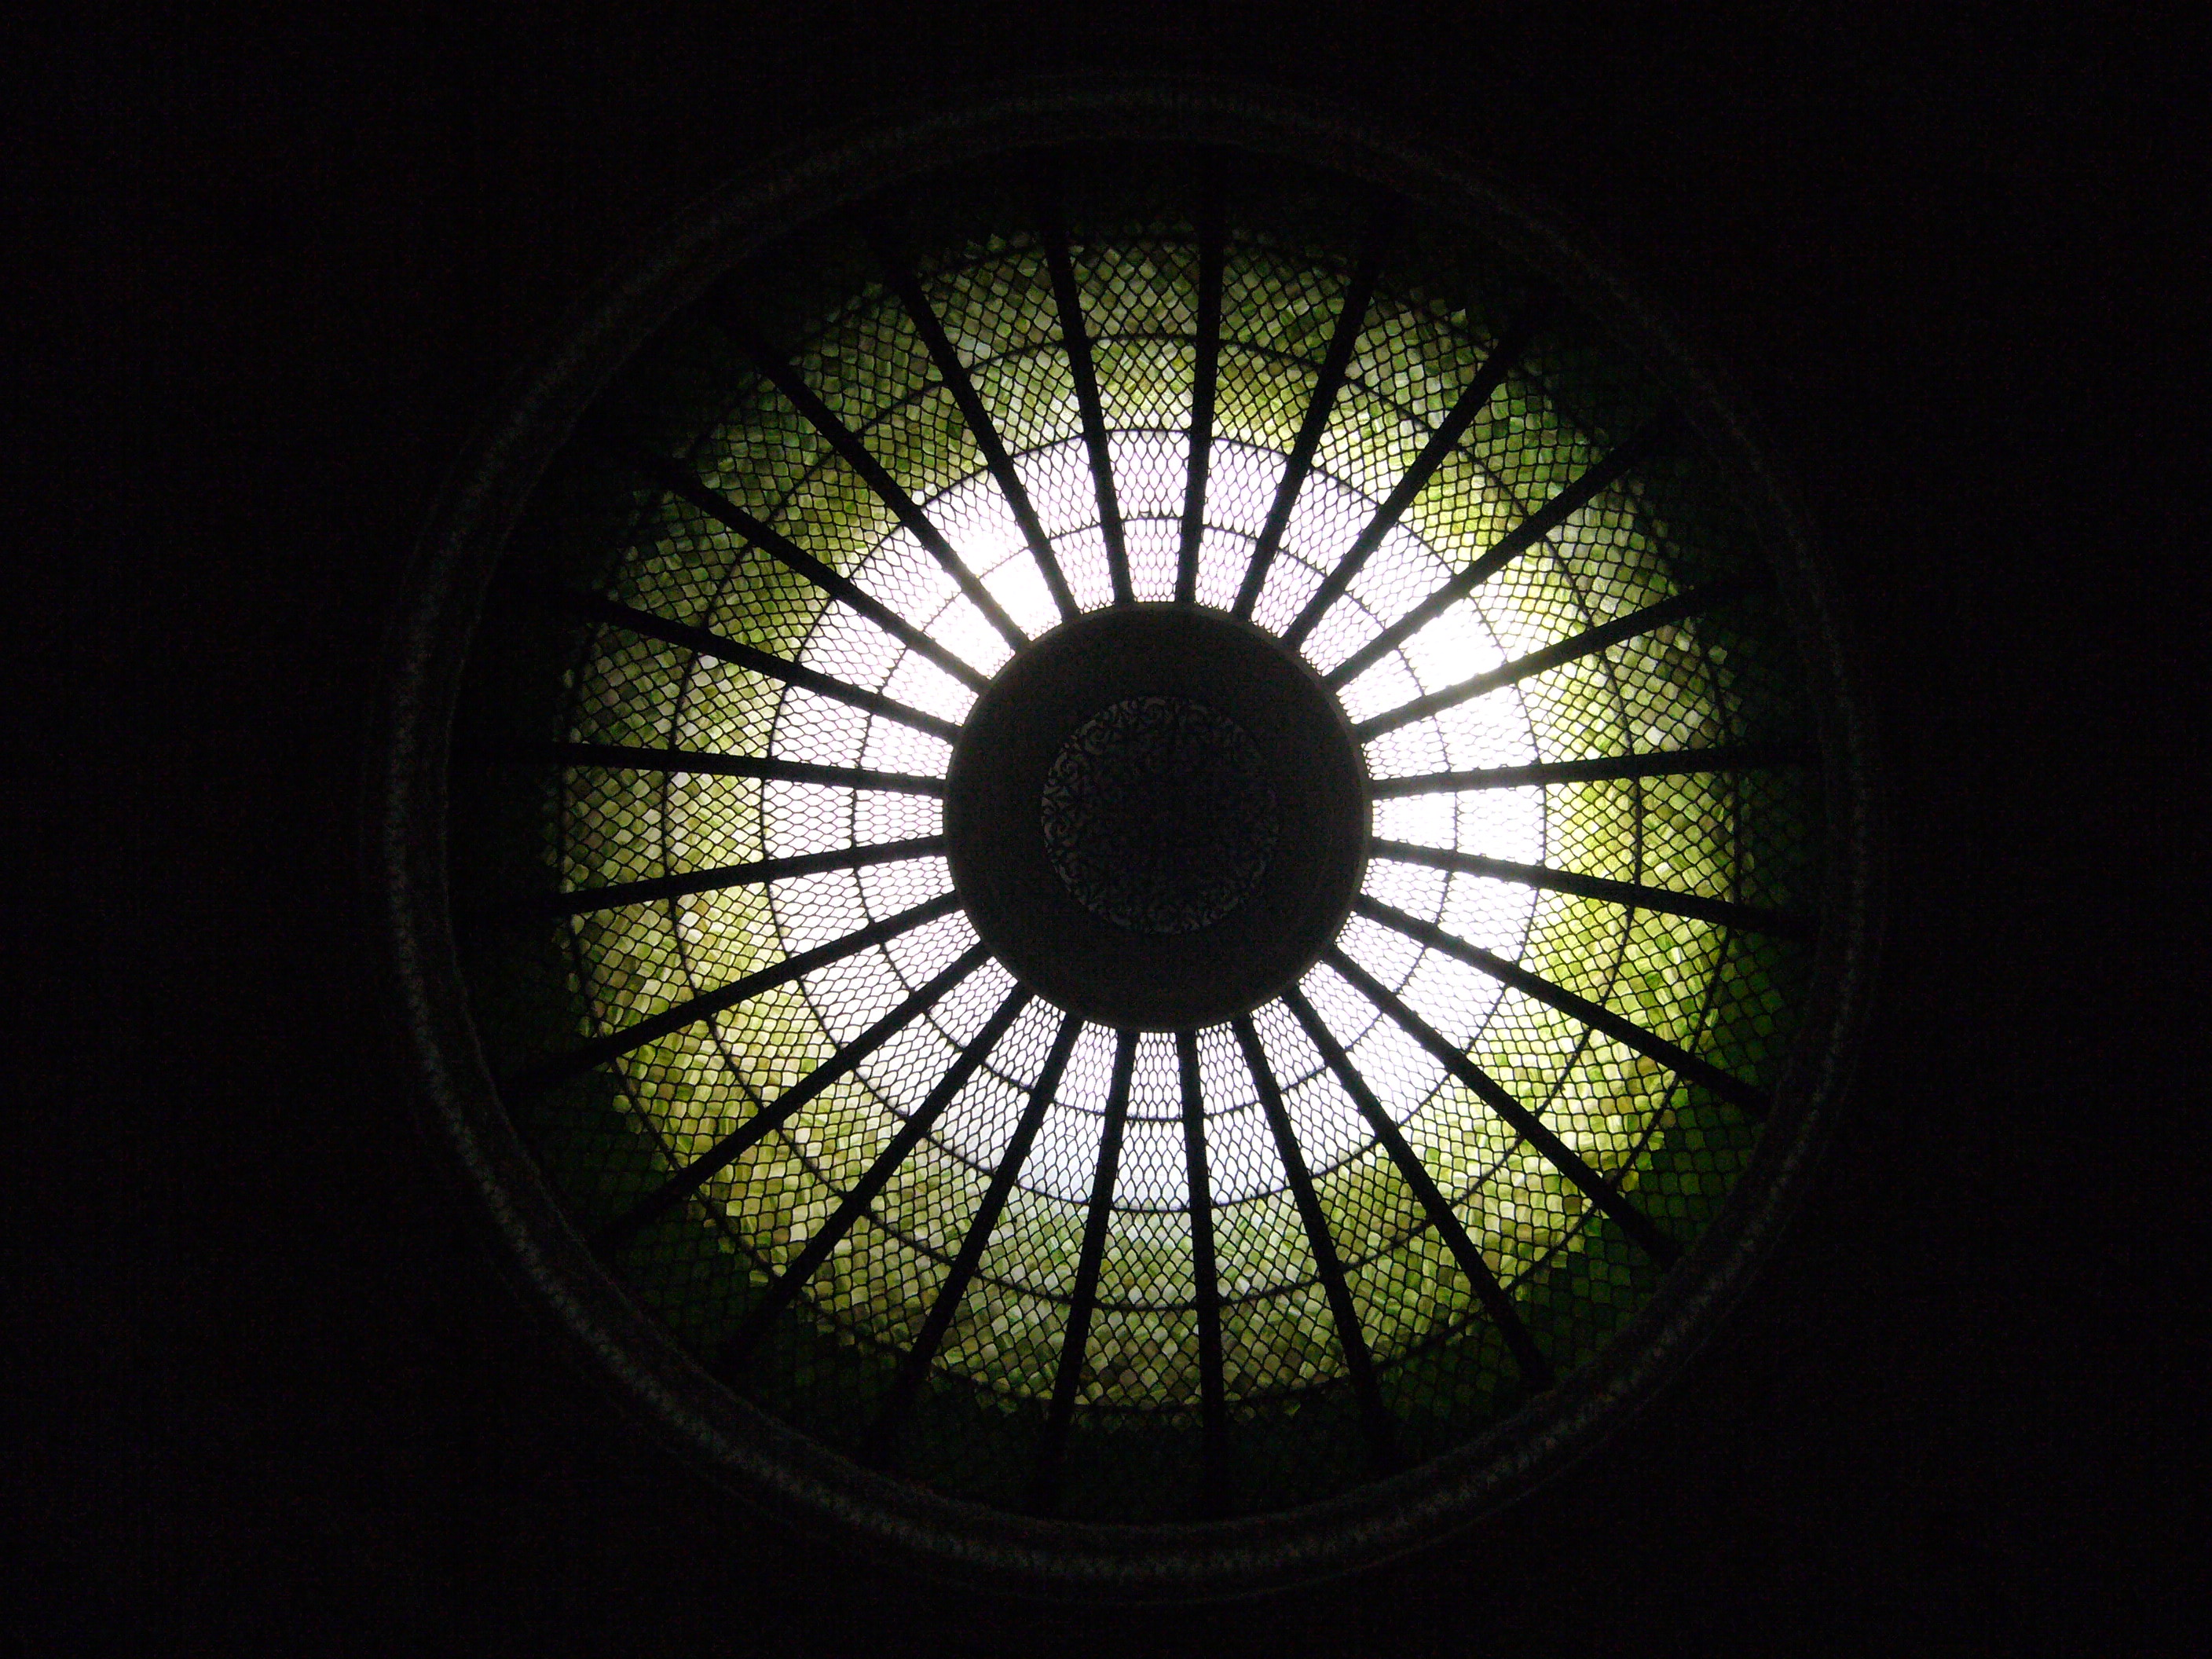 A view of a stained glass dome from the ground below it.